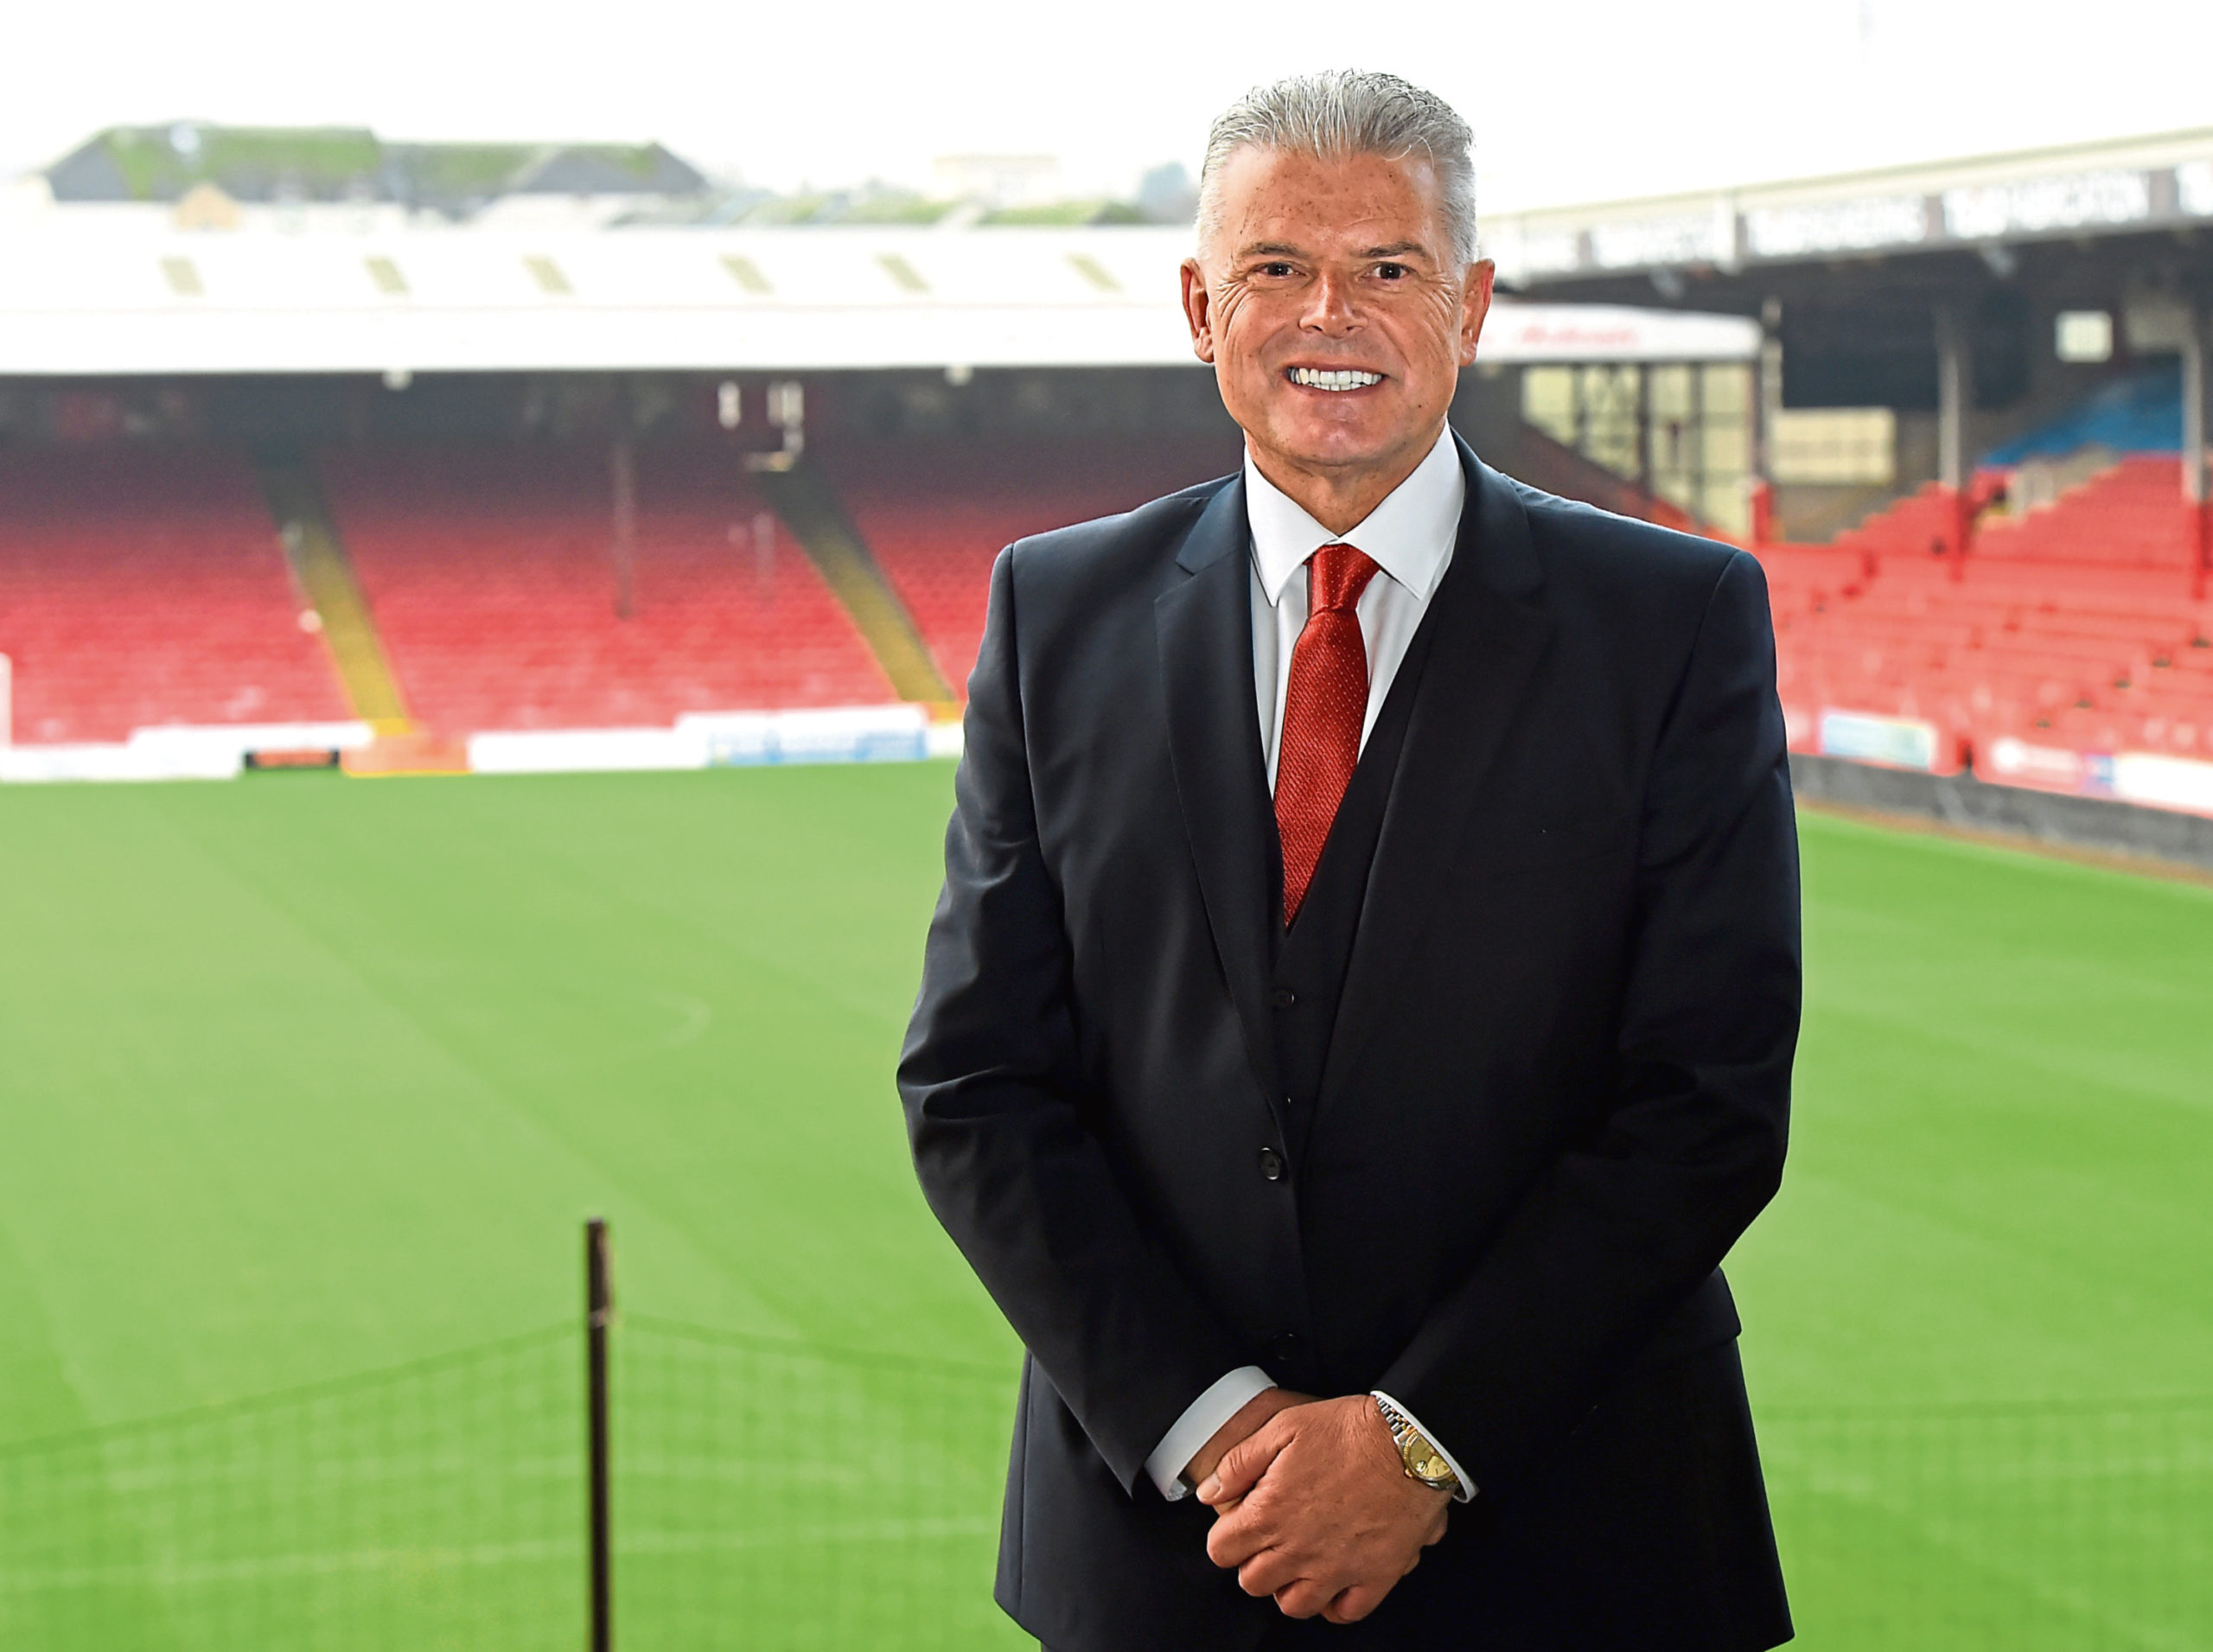 Aberdeen chairman Dave Cormack said Glass was steeped in the 'Aberdeen Way'.